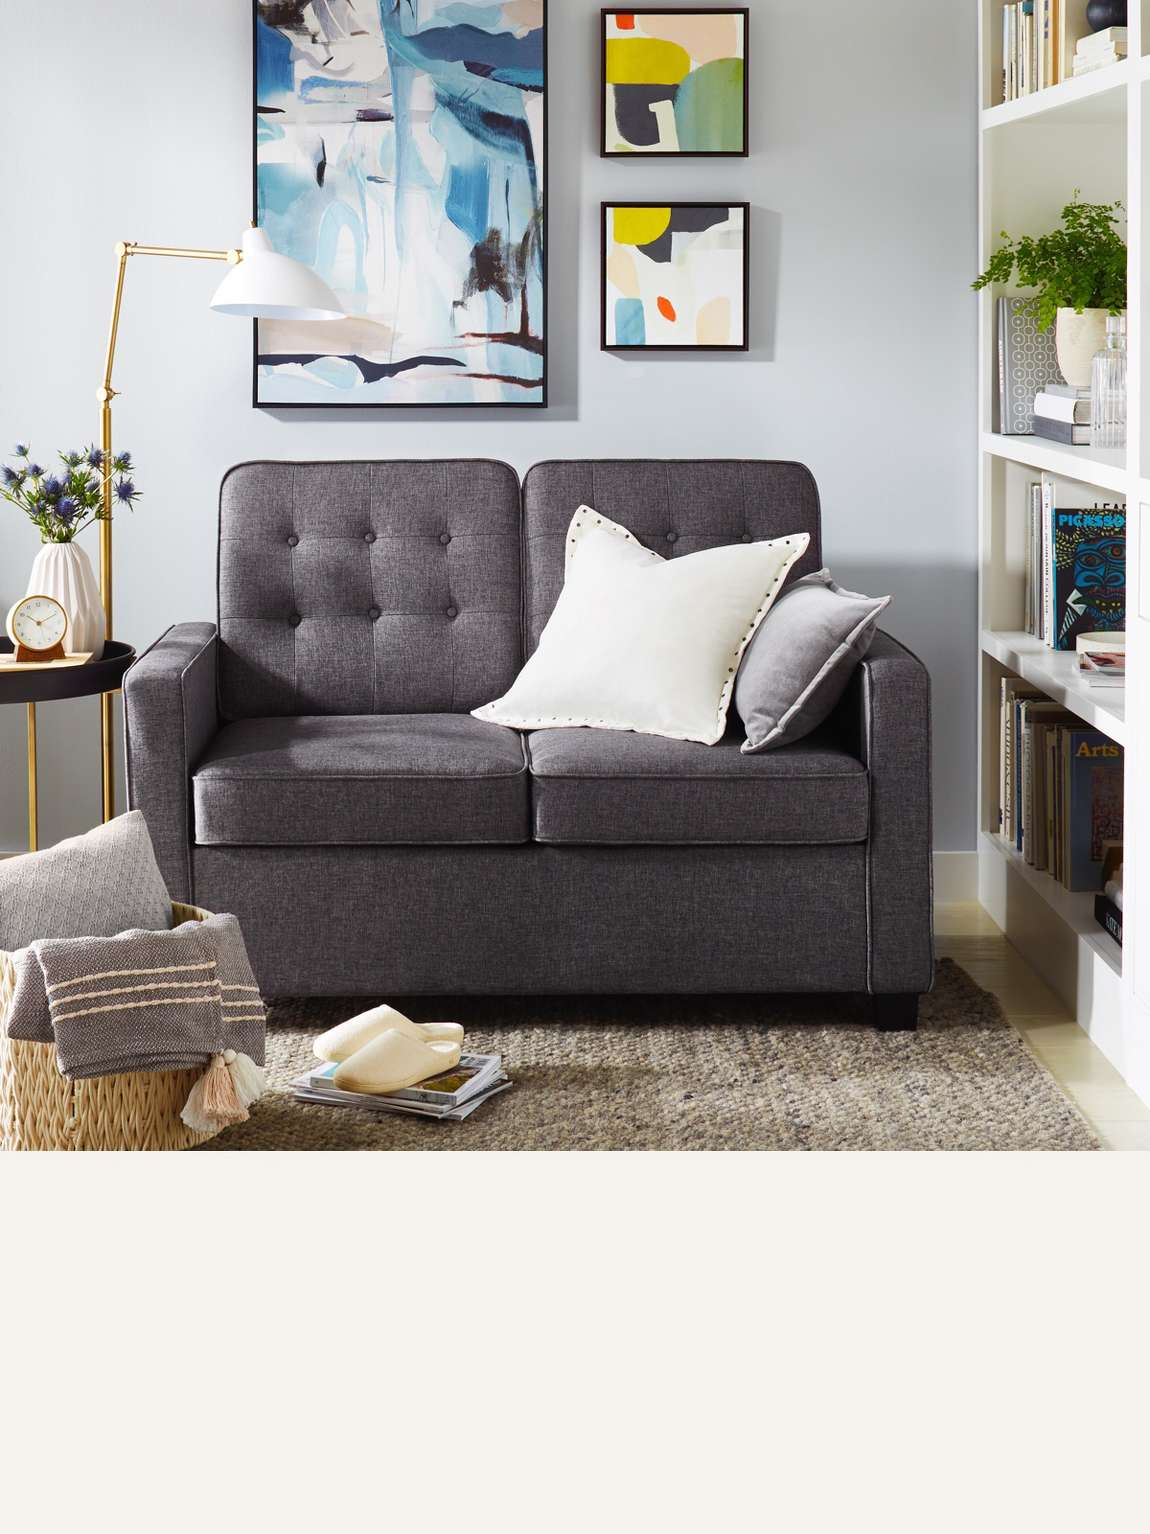 Sensational Signature Design By Ashley Sofas Sectionals Target Ncnpc Chair Design For Home Ncnpcorg